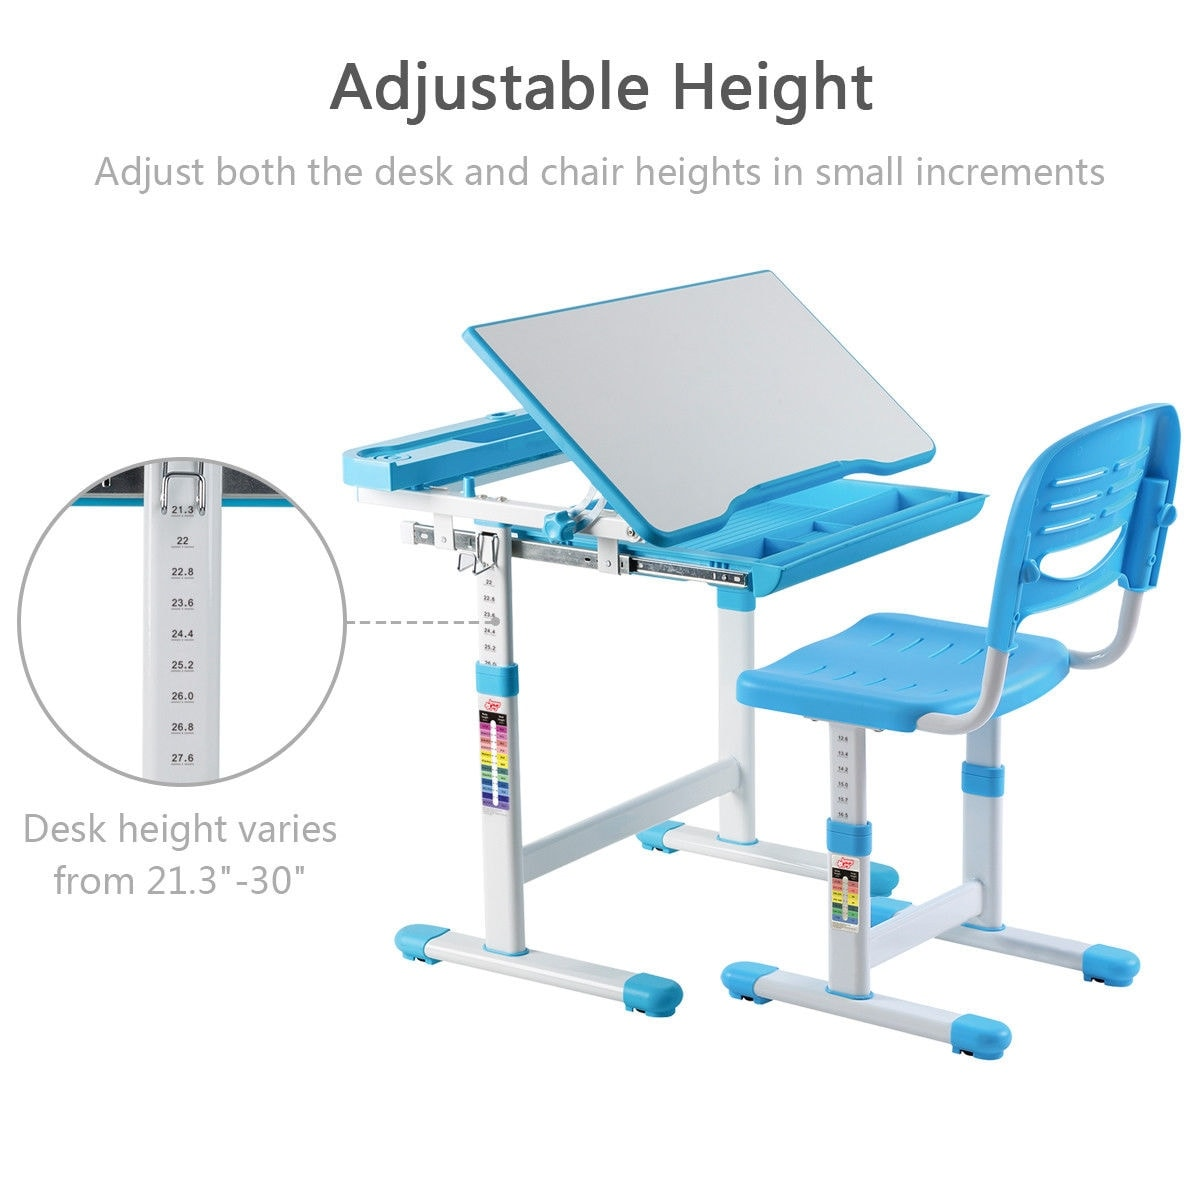 Strange Gymax Height Adjustable Childrens Desk Chair Set Multifunctional Study Drawing Blue Onthecornerstone Fun Painted Chair Ideas Images Onthecornerstoneorg